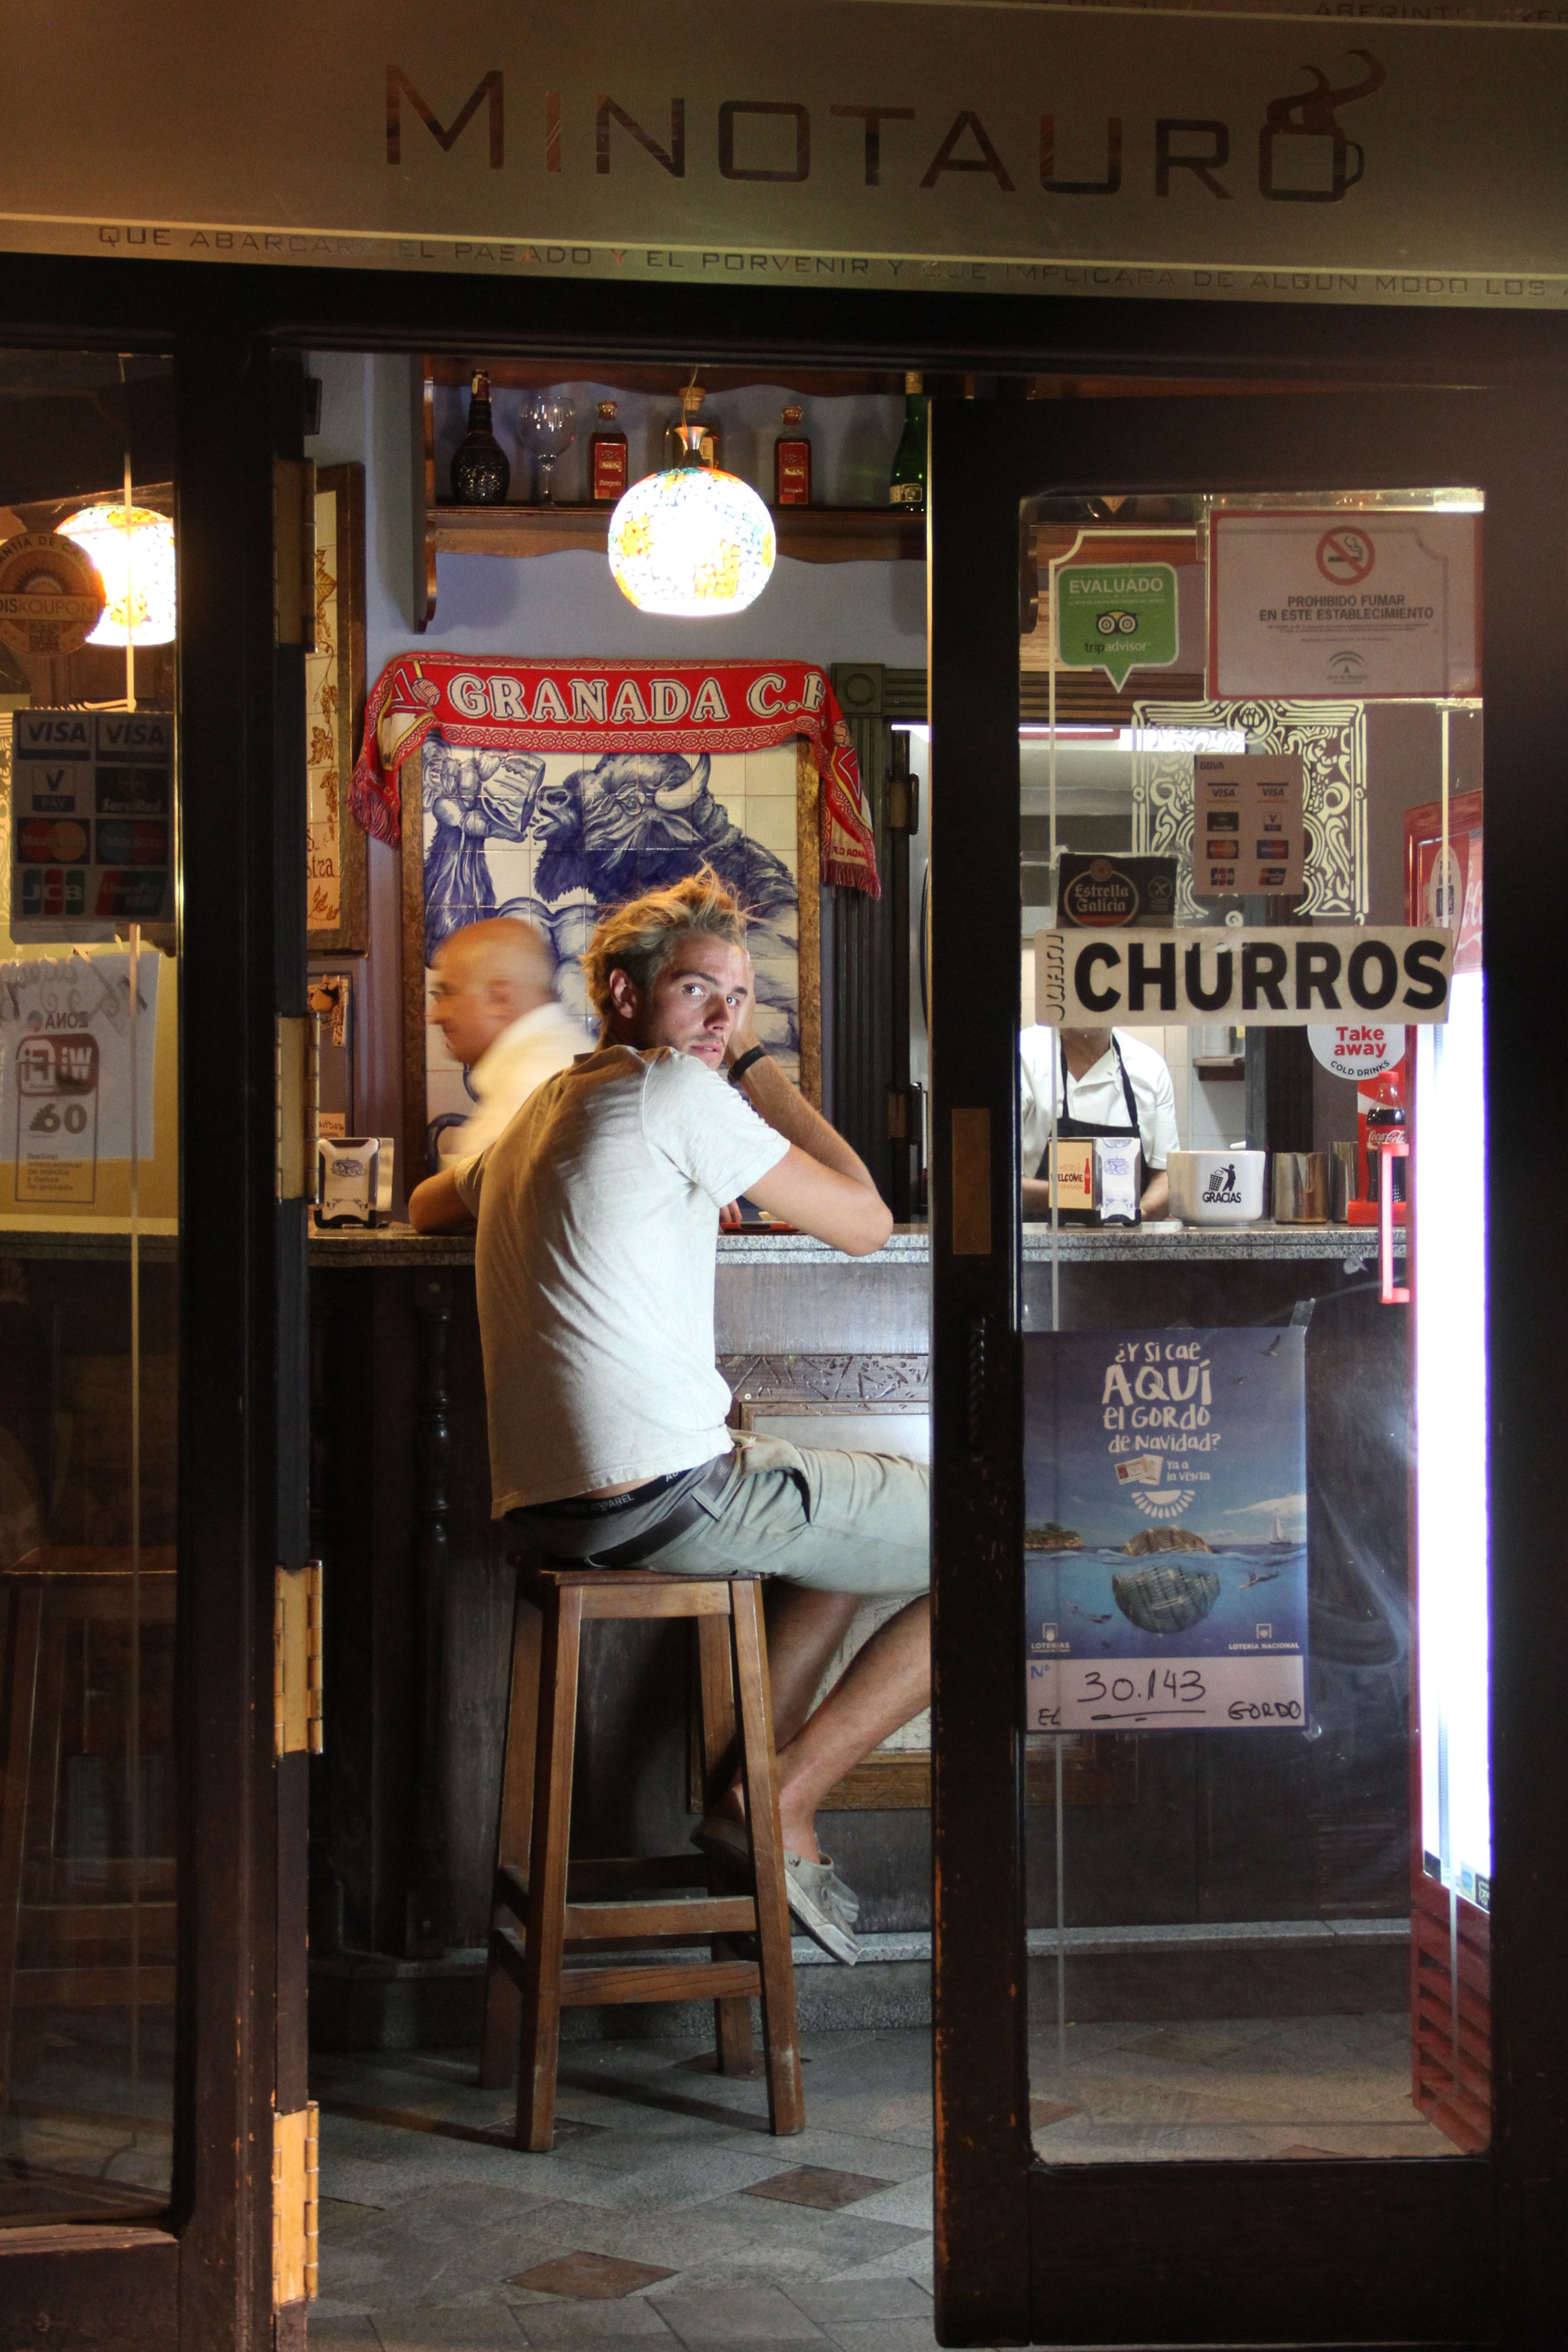 @LucianaLopezRec Adult Adults Only Beatiful Churros Churros 😝 Day Full Length Granadaturismo Indoors  Man Minotauro My Year My View One Person One Woman Only One Young Woman Only Only Women People Street Street Photography Streetphotography Young Adult Young Women